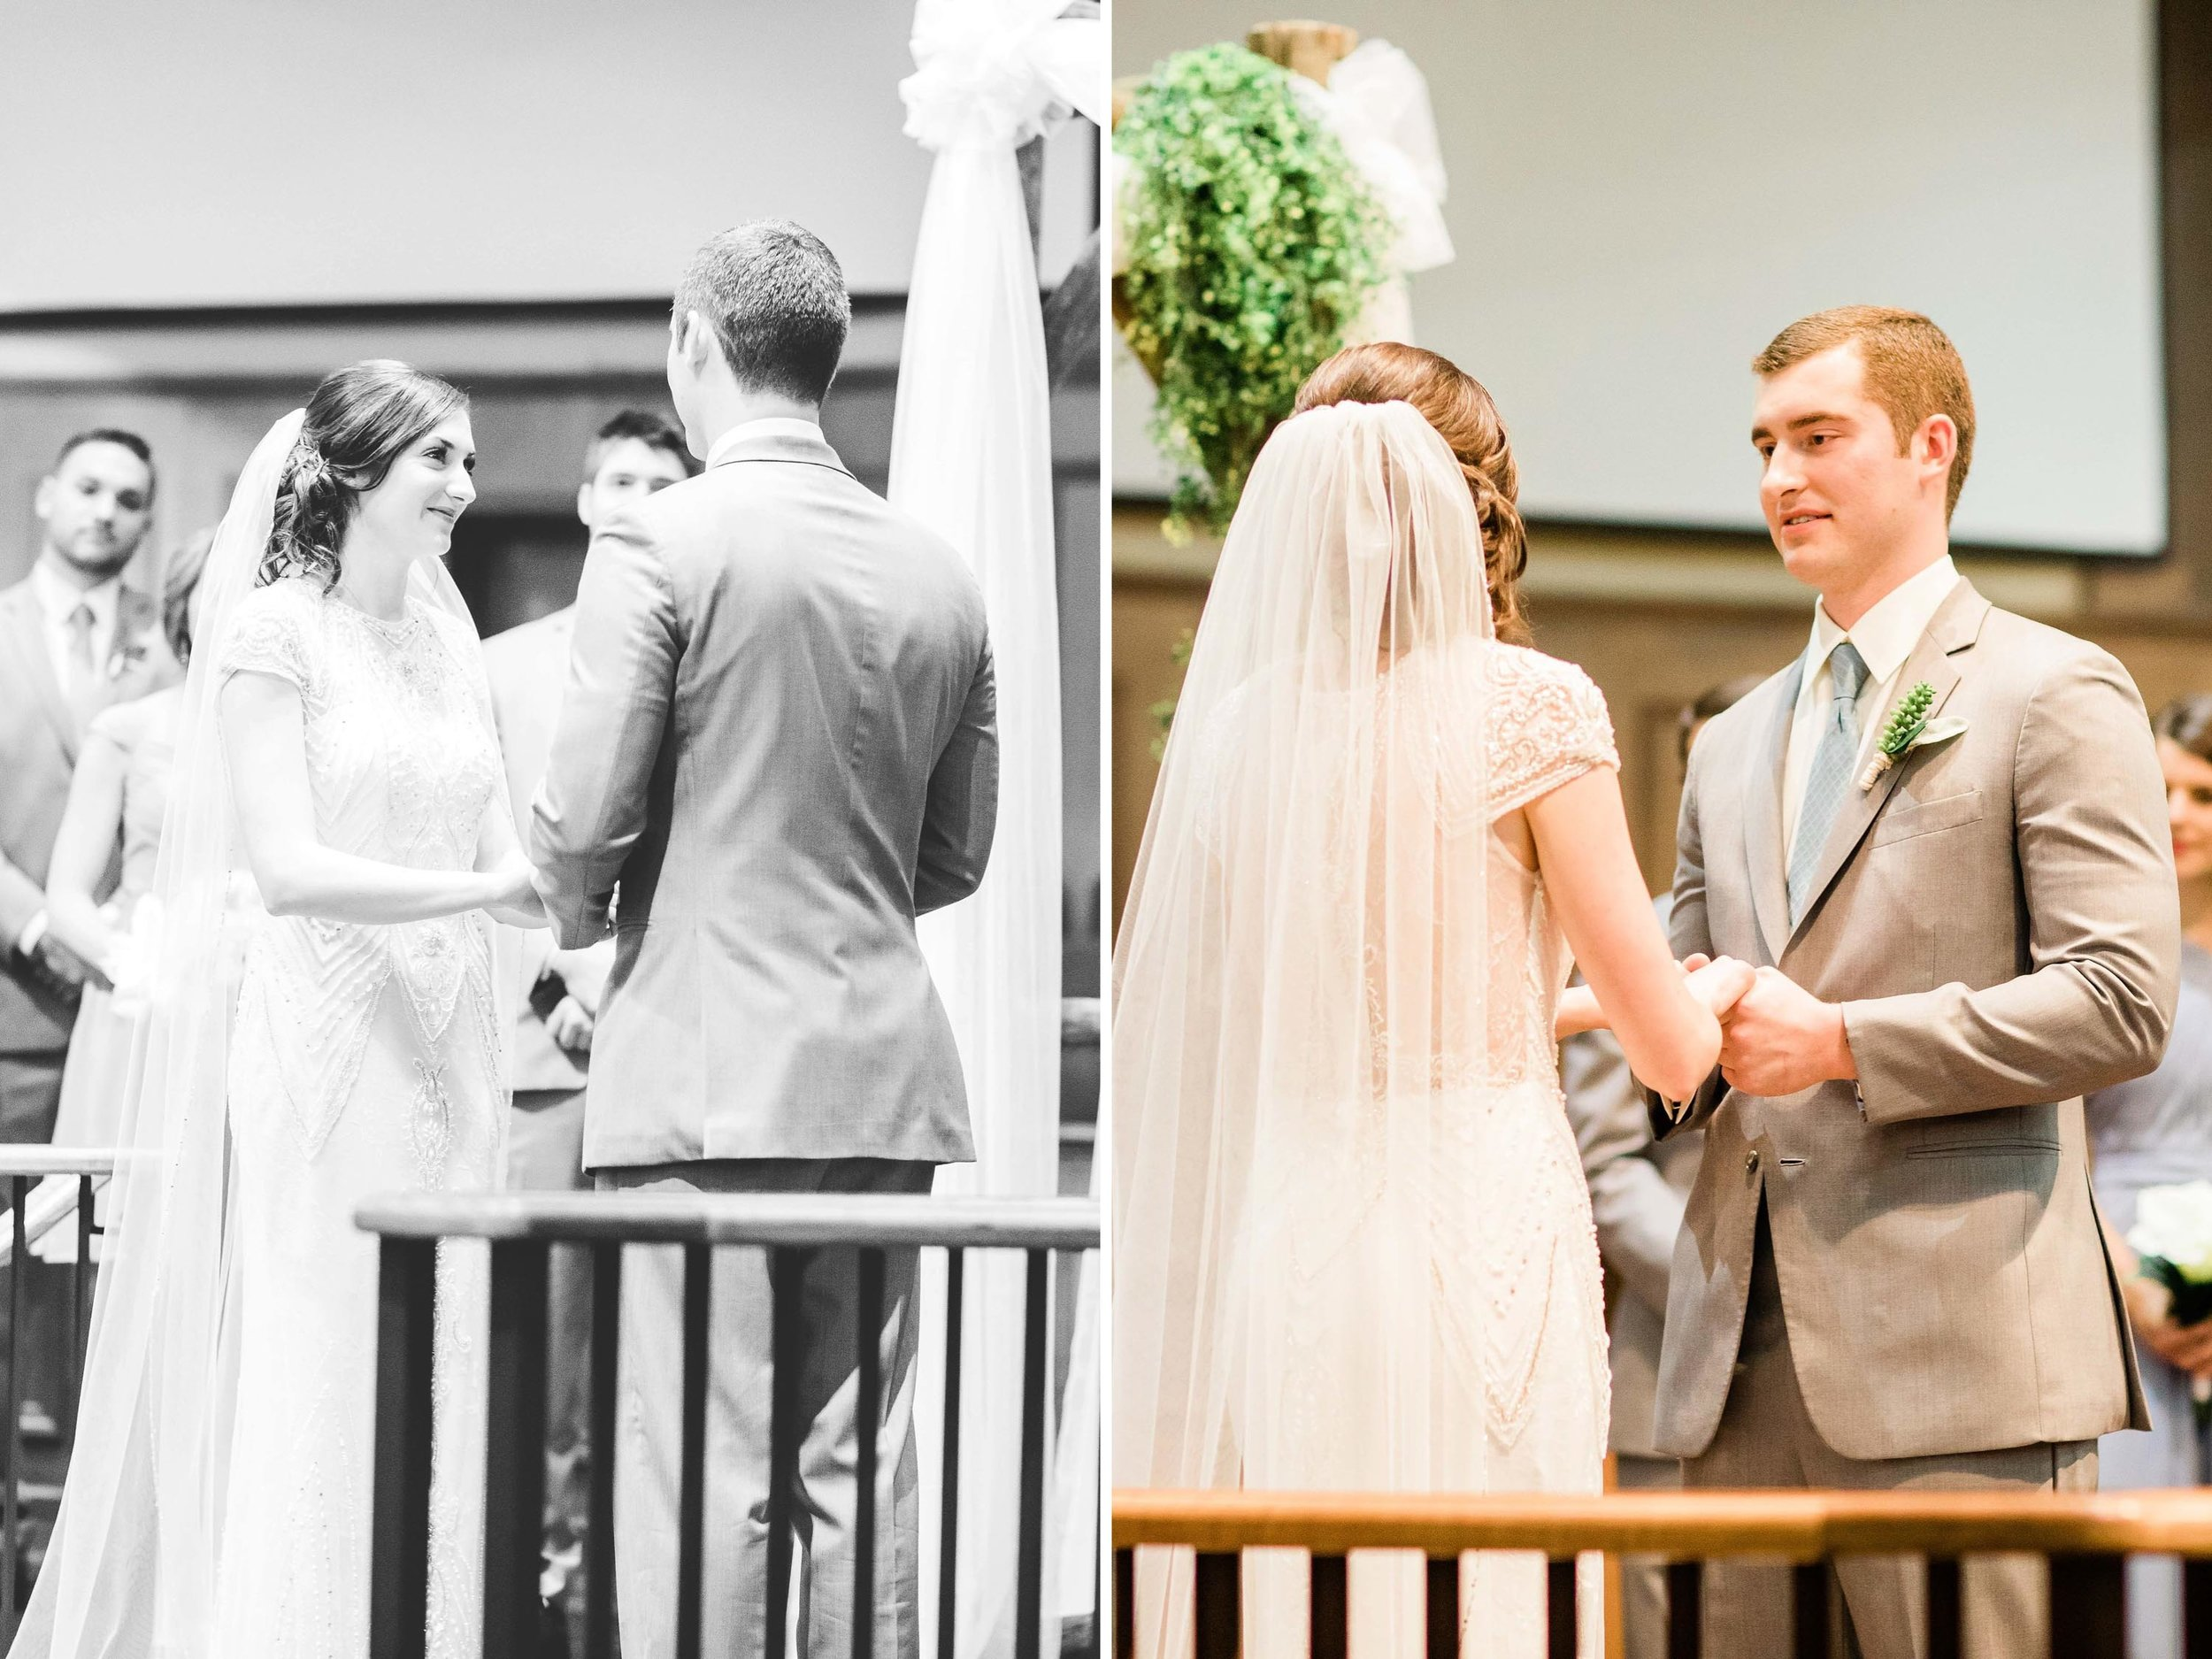 C grace baptist church middletown ohio wedding.jpg